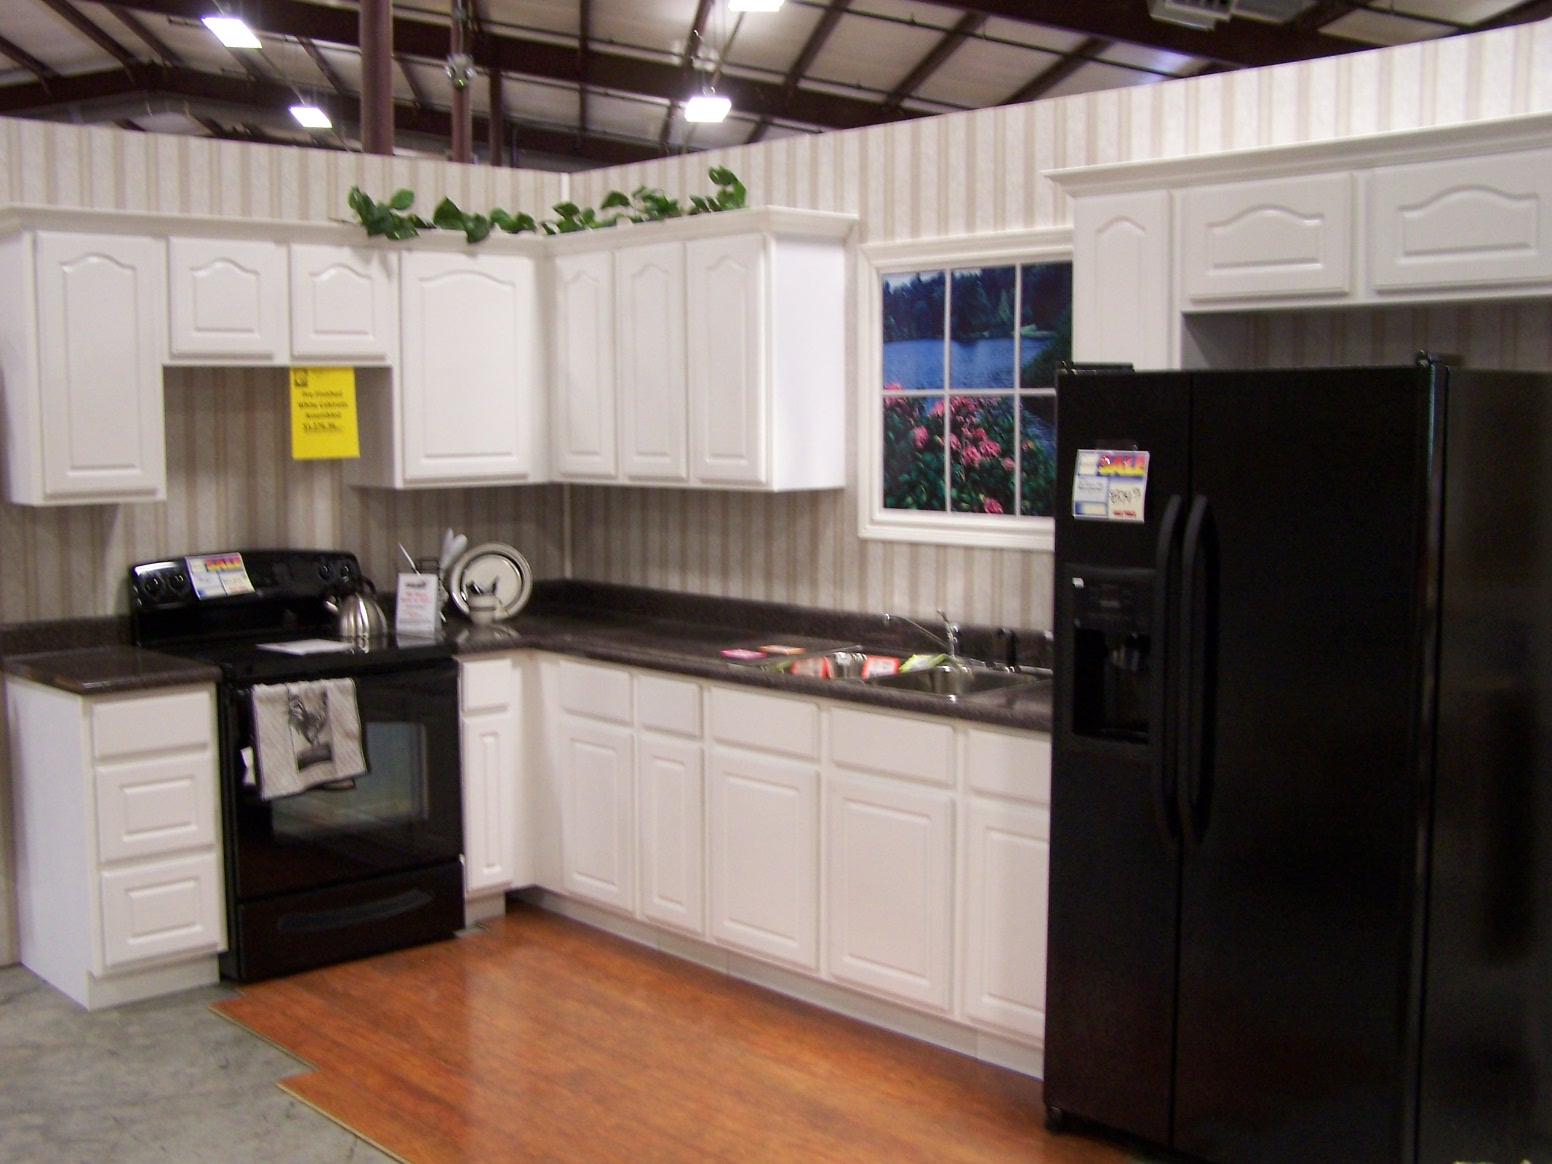 Black Kitchen Storage Cabinet White Kitchen Storage Cabinet Image Of Modern Kitchen Storage